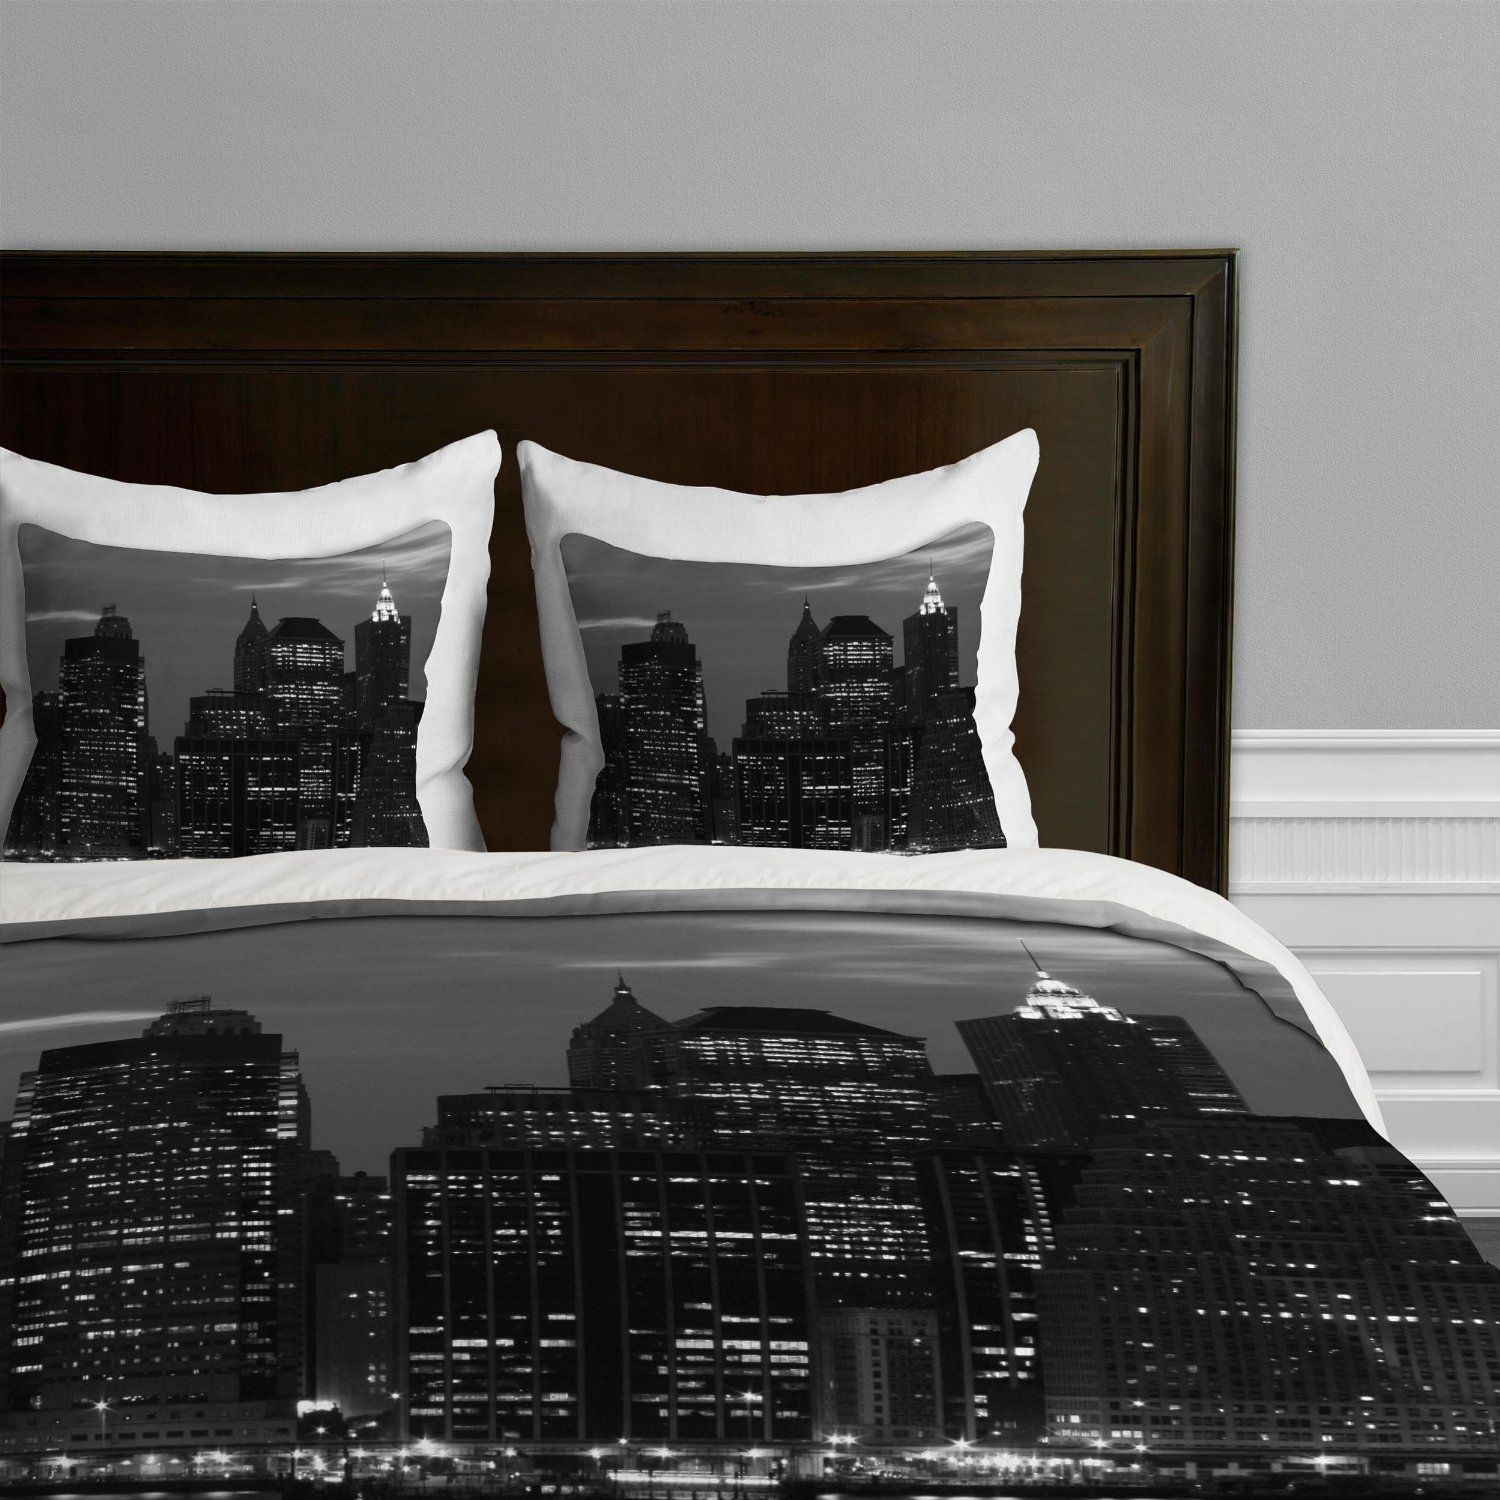 new york skyline bedding & nyc themed bedroom ideas | marissa's